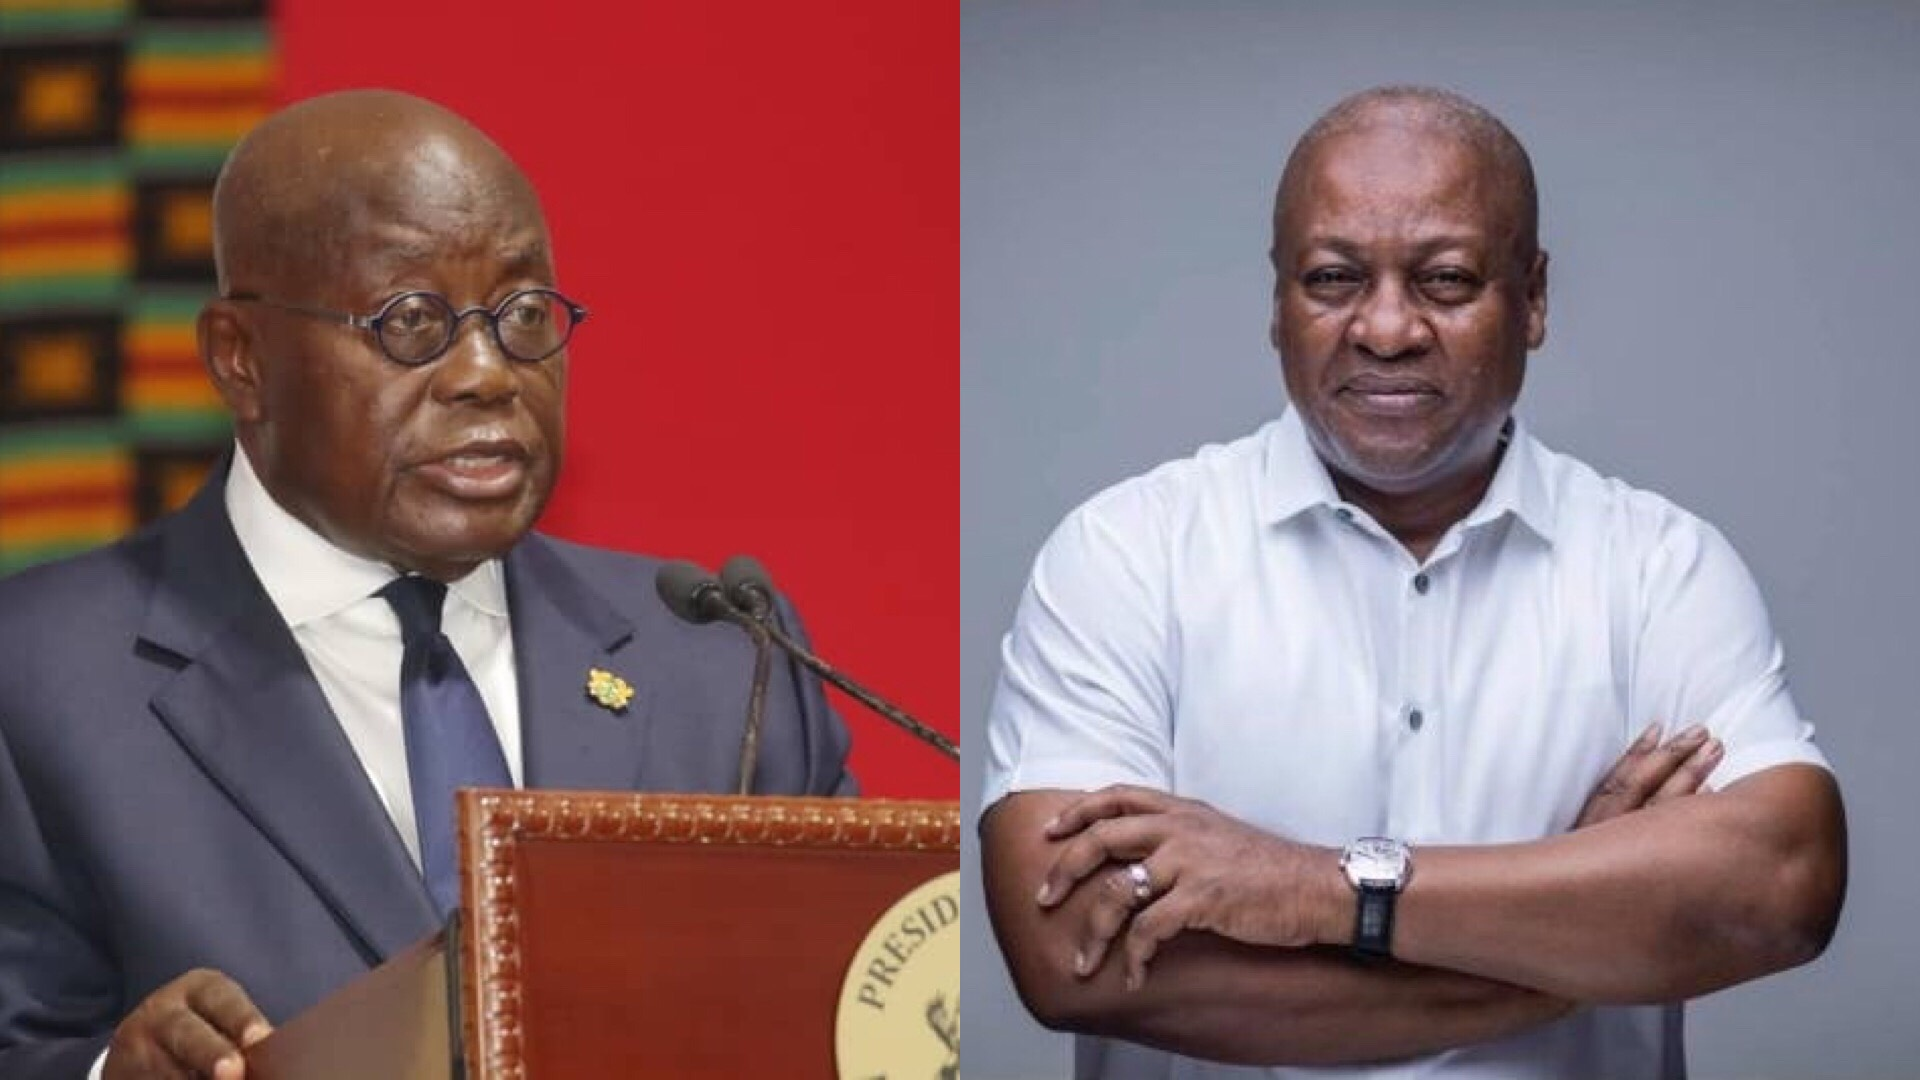 International Court of Arbitration Orders Akufo-Addo to Pay $130 million for Cancelling Mahama's Projects